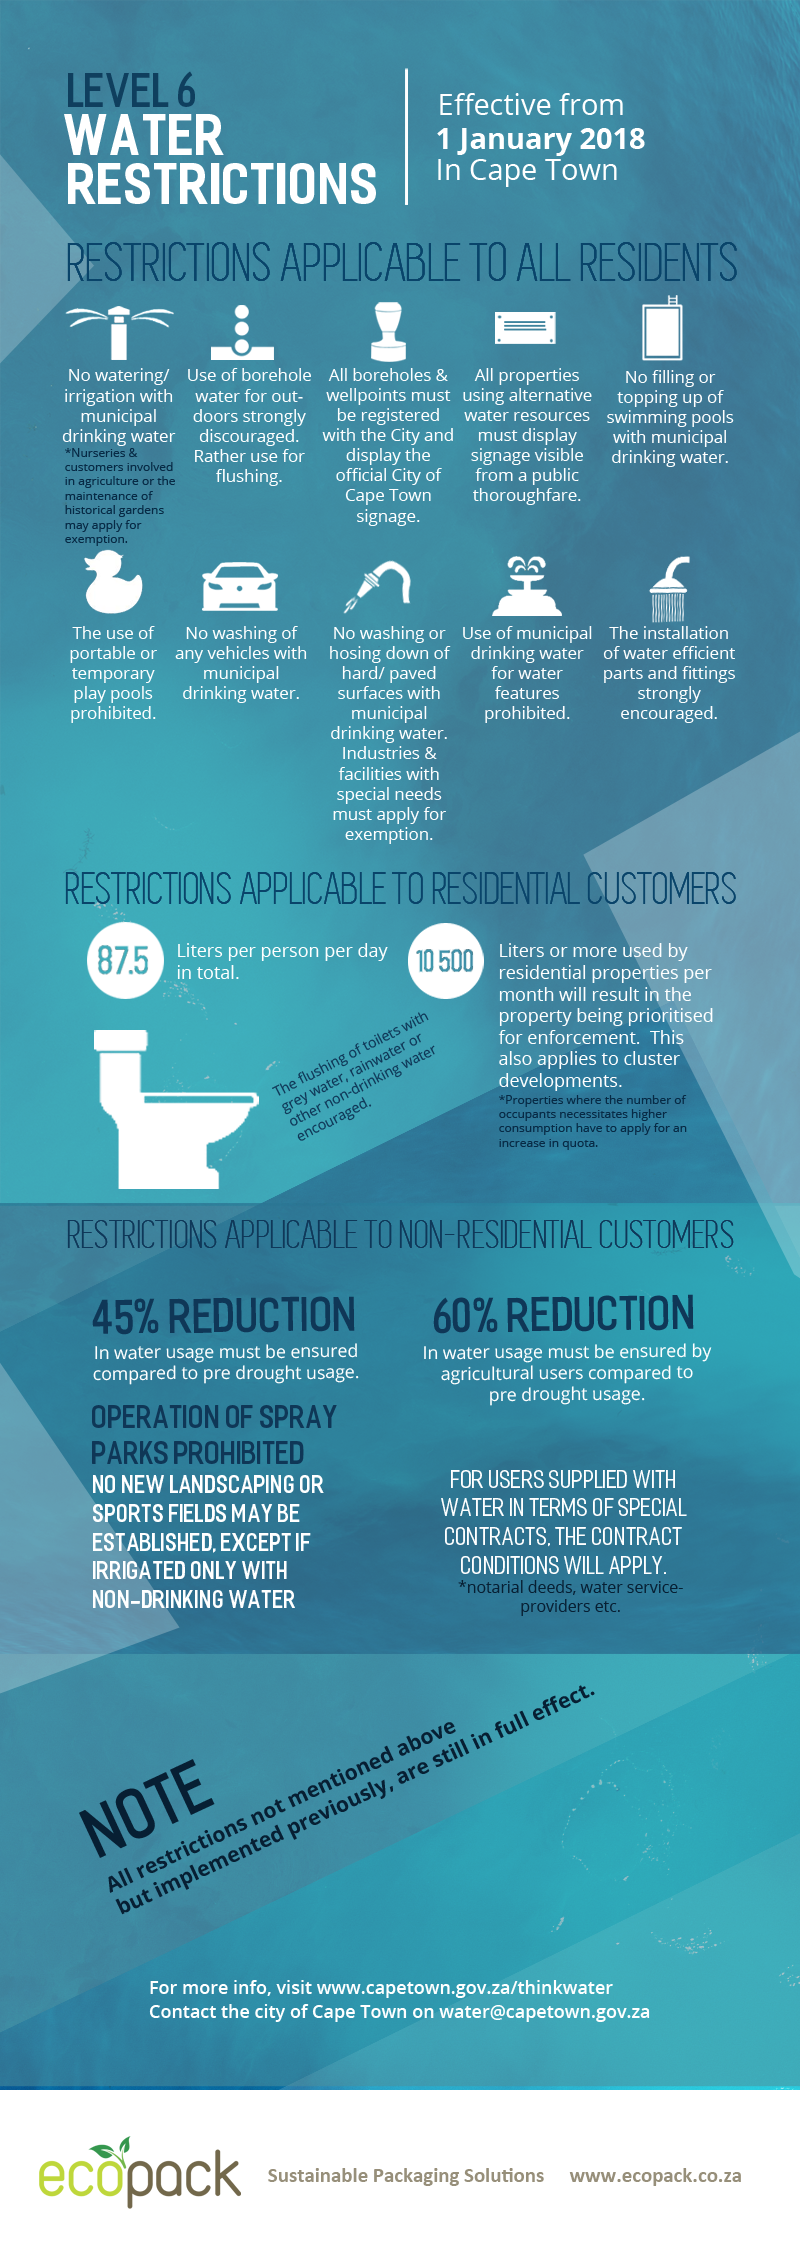 Level 6 restrictions - InfoGraphic - EcoPack - South Africa